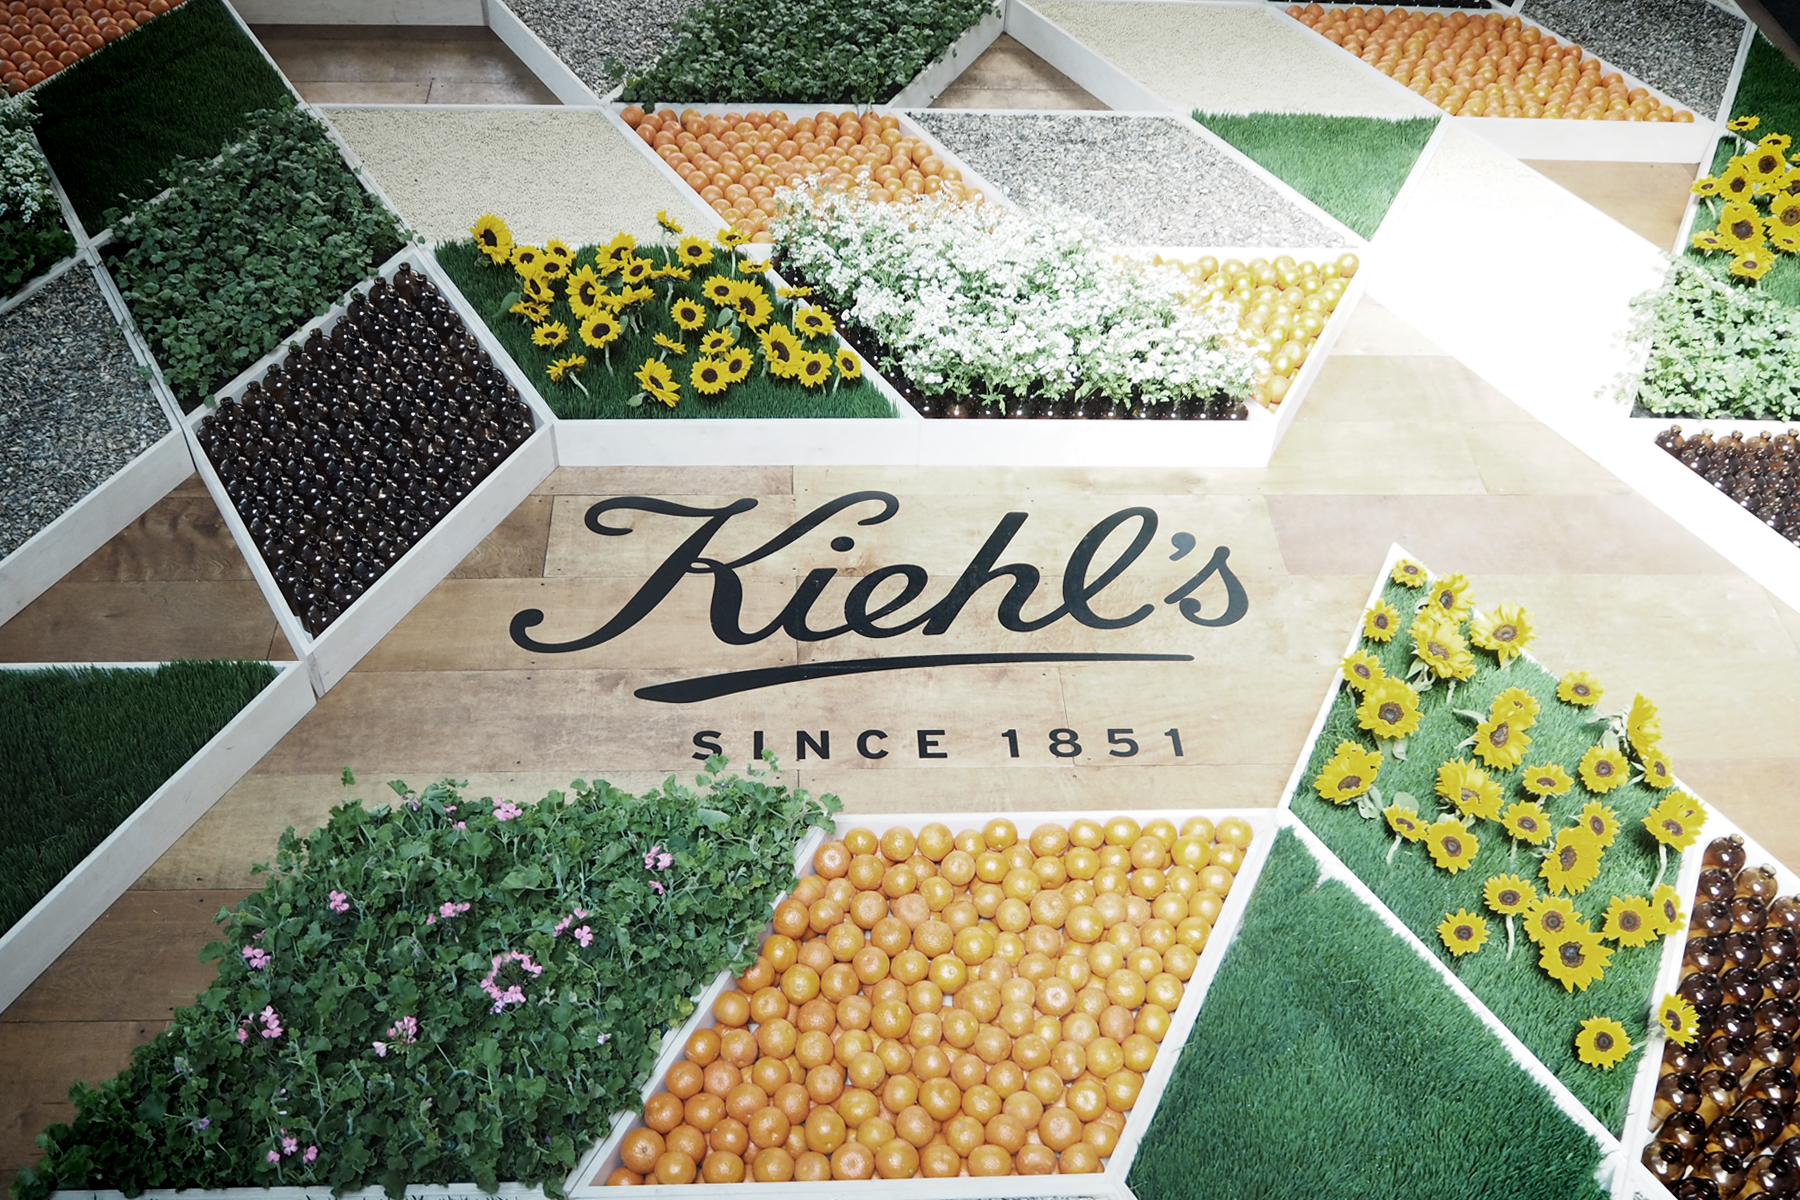 Video: World of Kiehl's – Follow Me Around in NYC